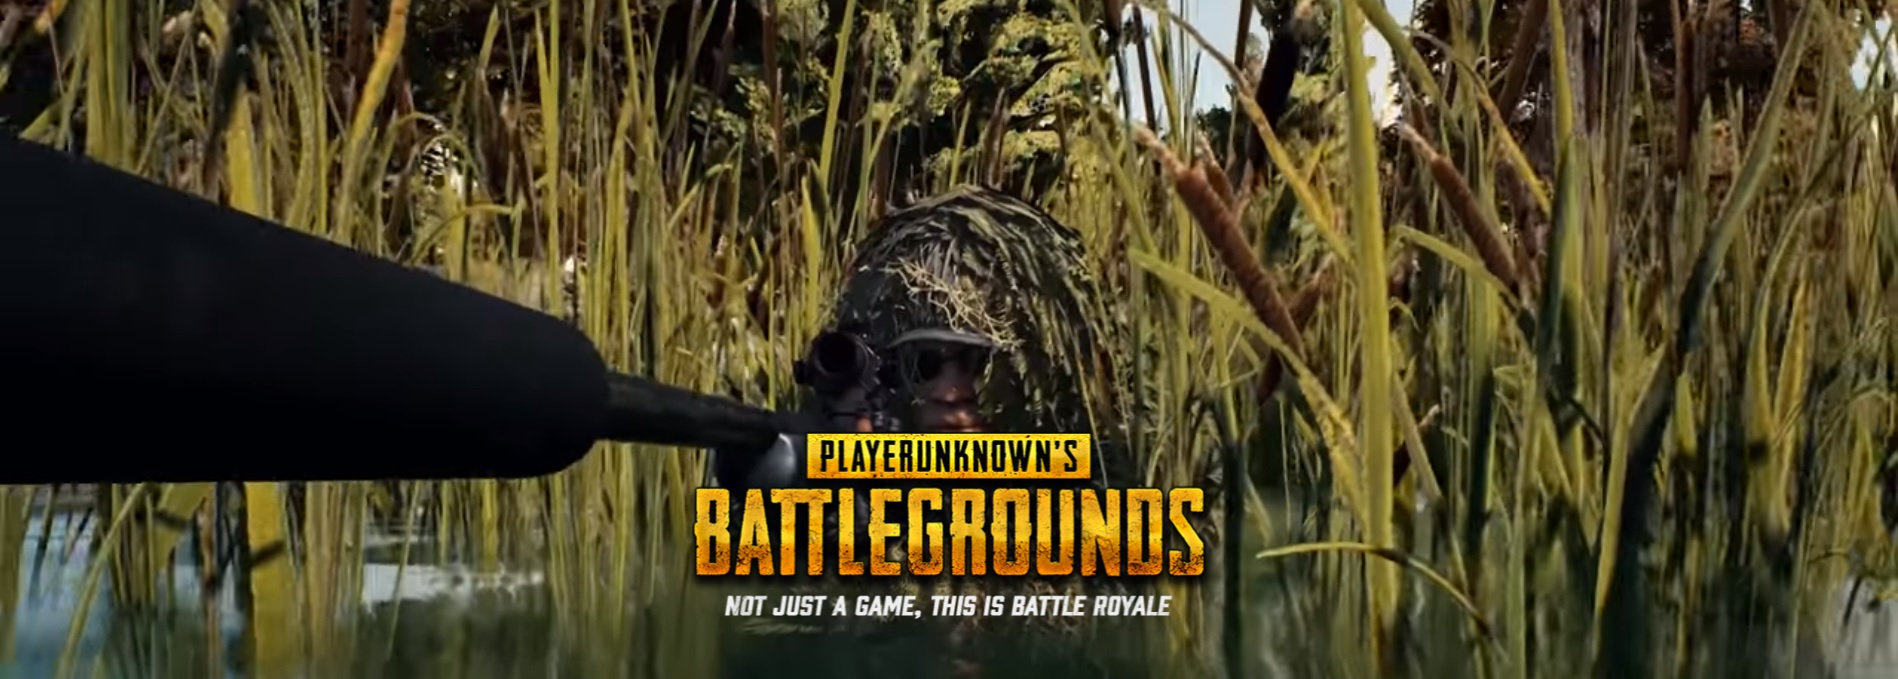 Pubg Word Wallpaper: PLAYERUNKNOWN's BATTLEGROUNDS Review: Old Idea, Fresh Take